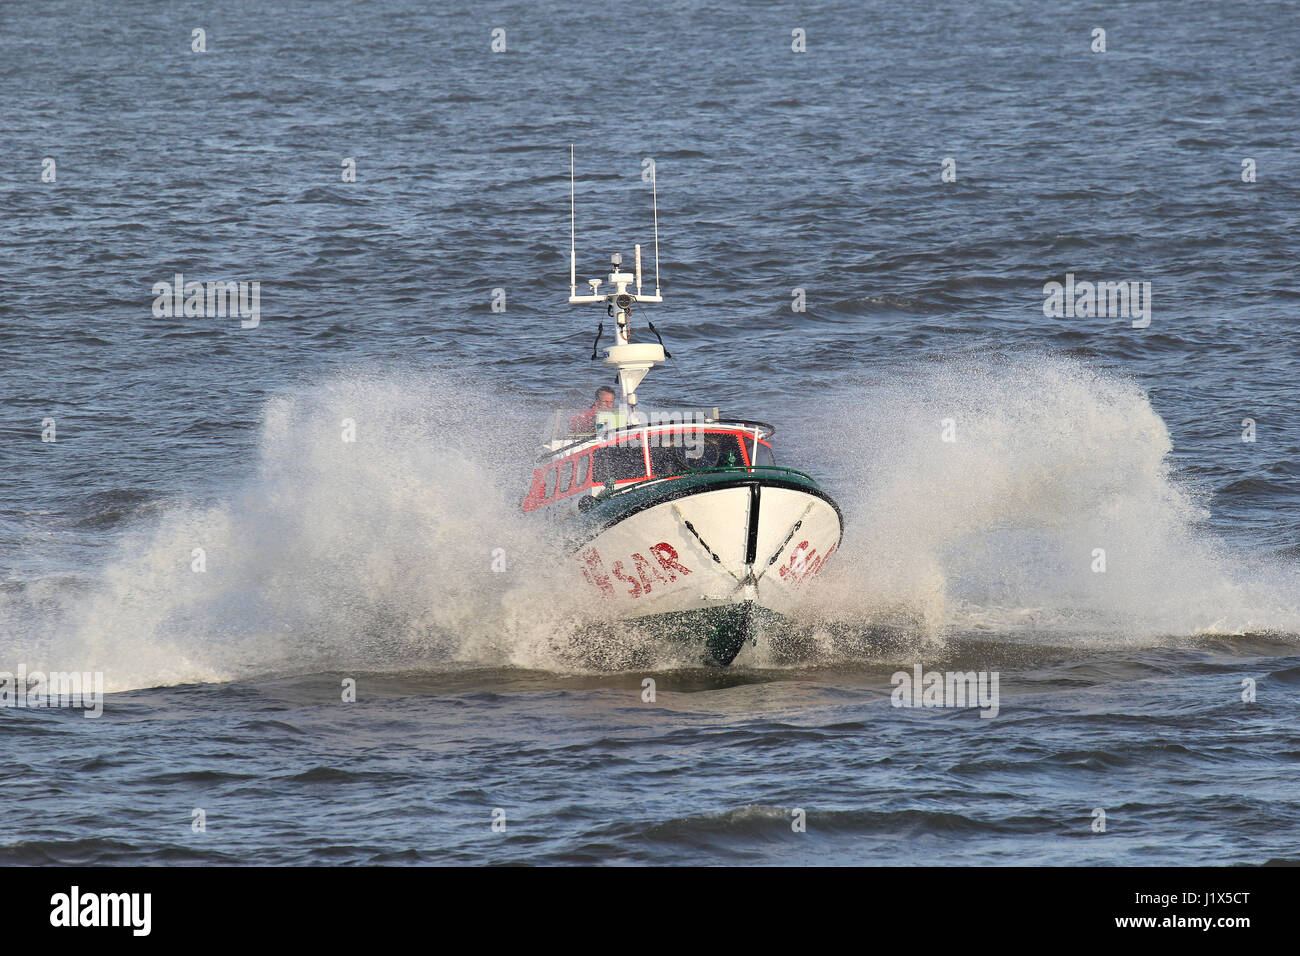 DGzRS SAR lifeboat BIENE on the river Elbe. The DGzRS is responsible for Search and Rescue in German territorial - Stock Image